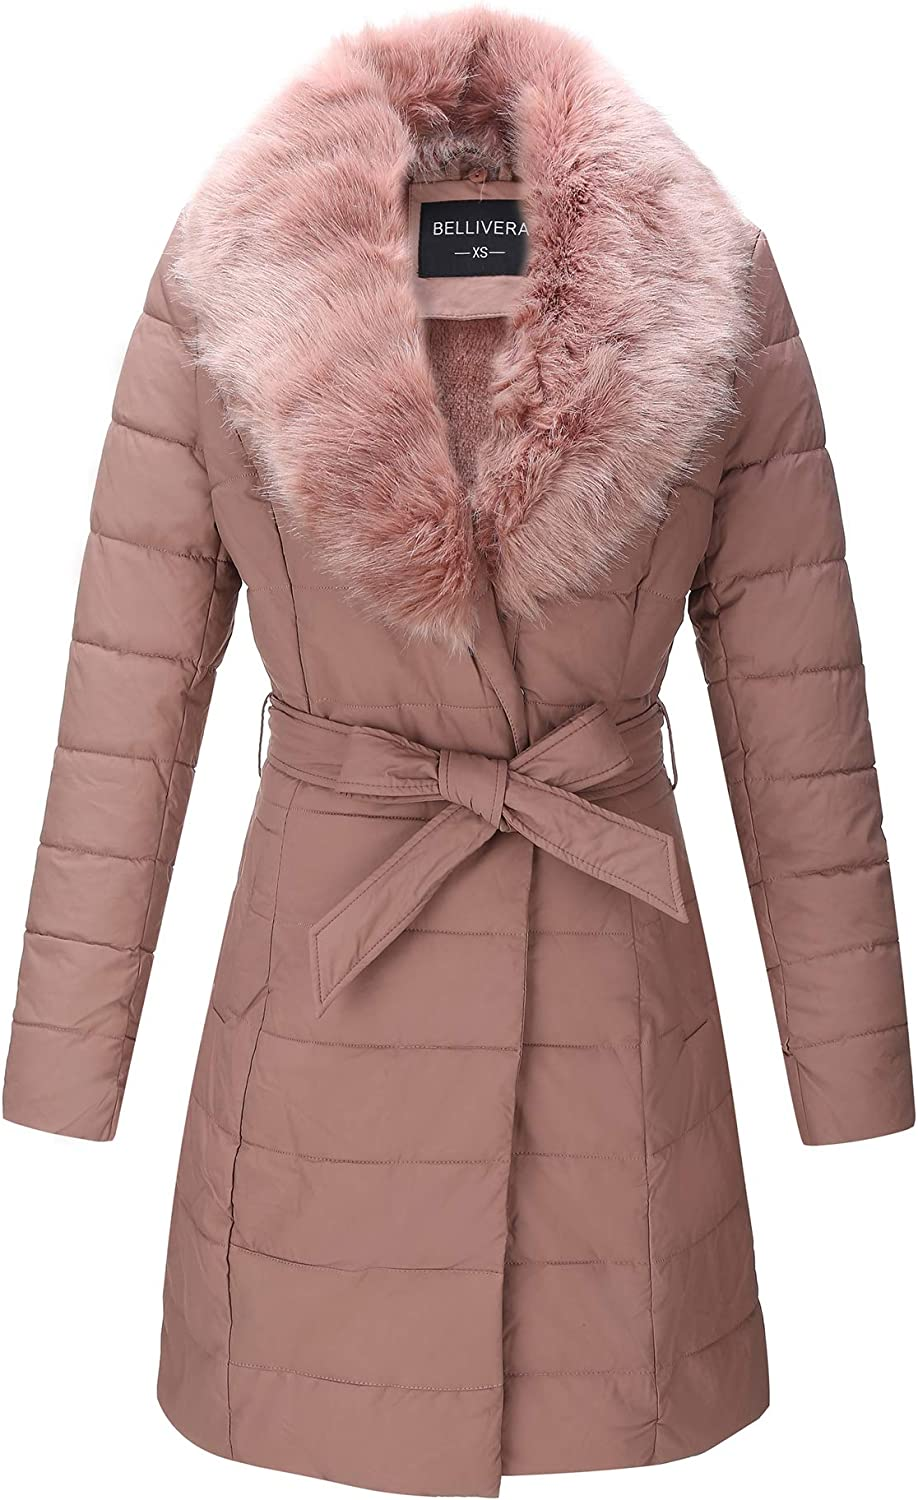 Bellivera Faux Leather Puffer Padding Long Jacket,Women Winter Bubble Coats with Detachable Faux Fur Collar